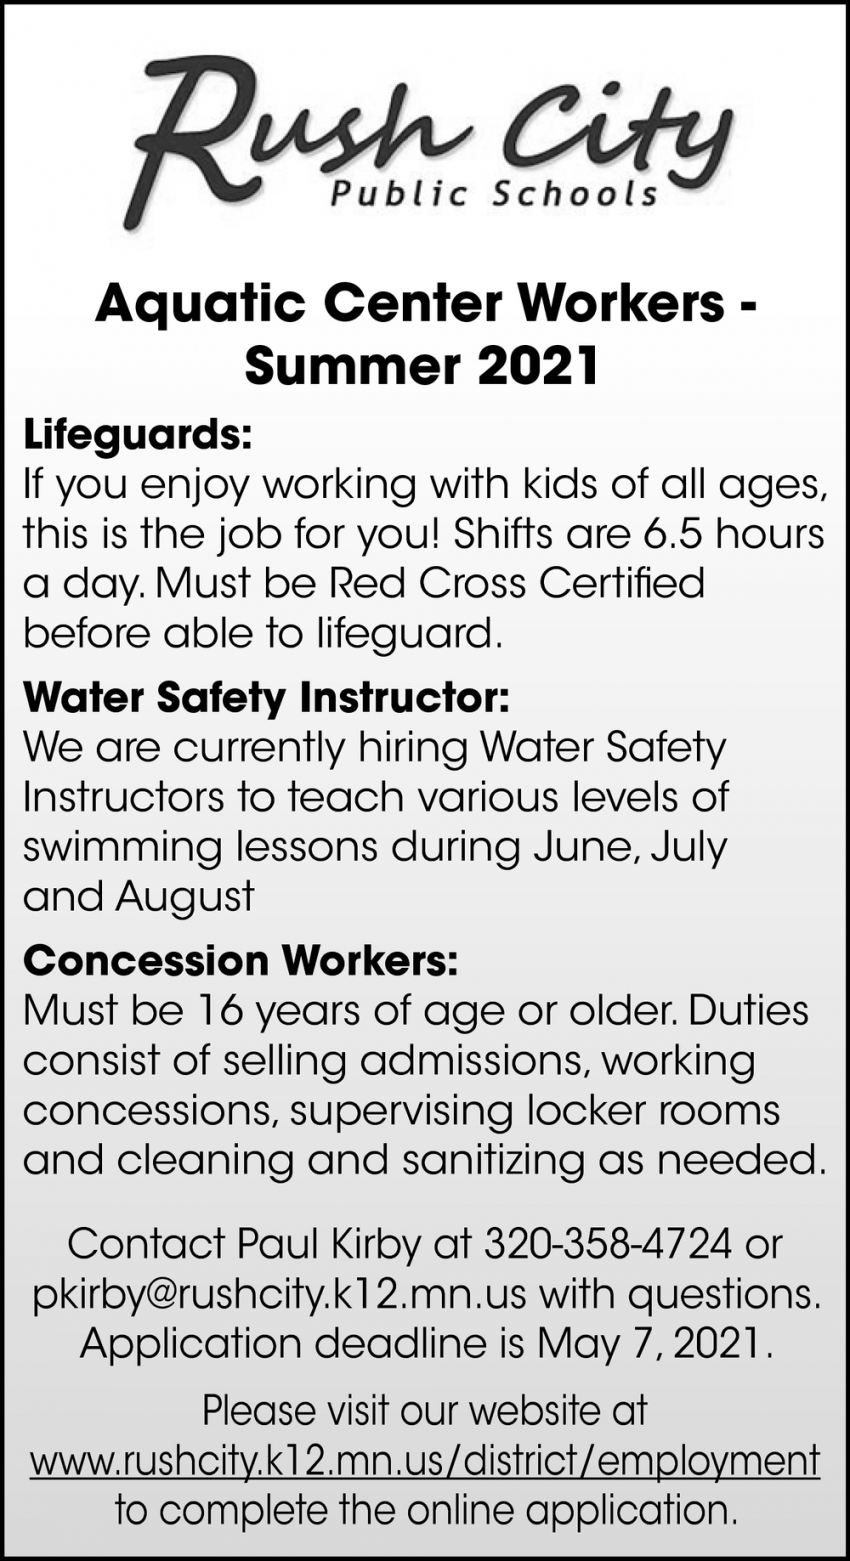 Aquatic Center Workers - Summer 2021